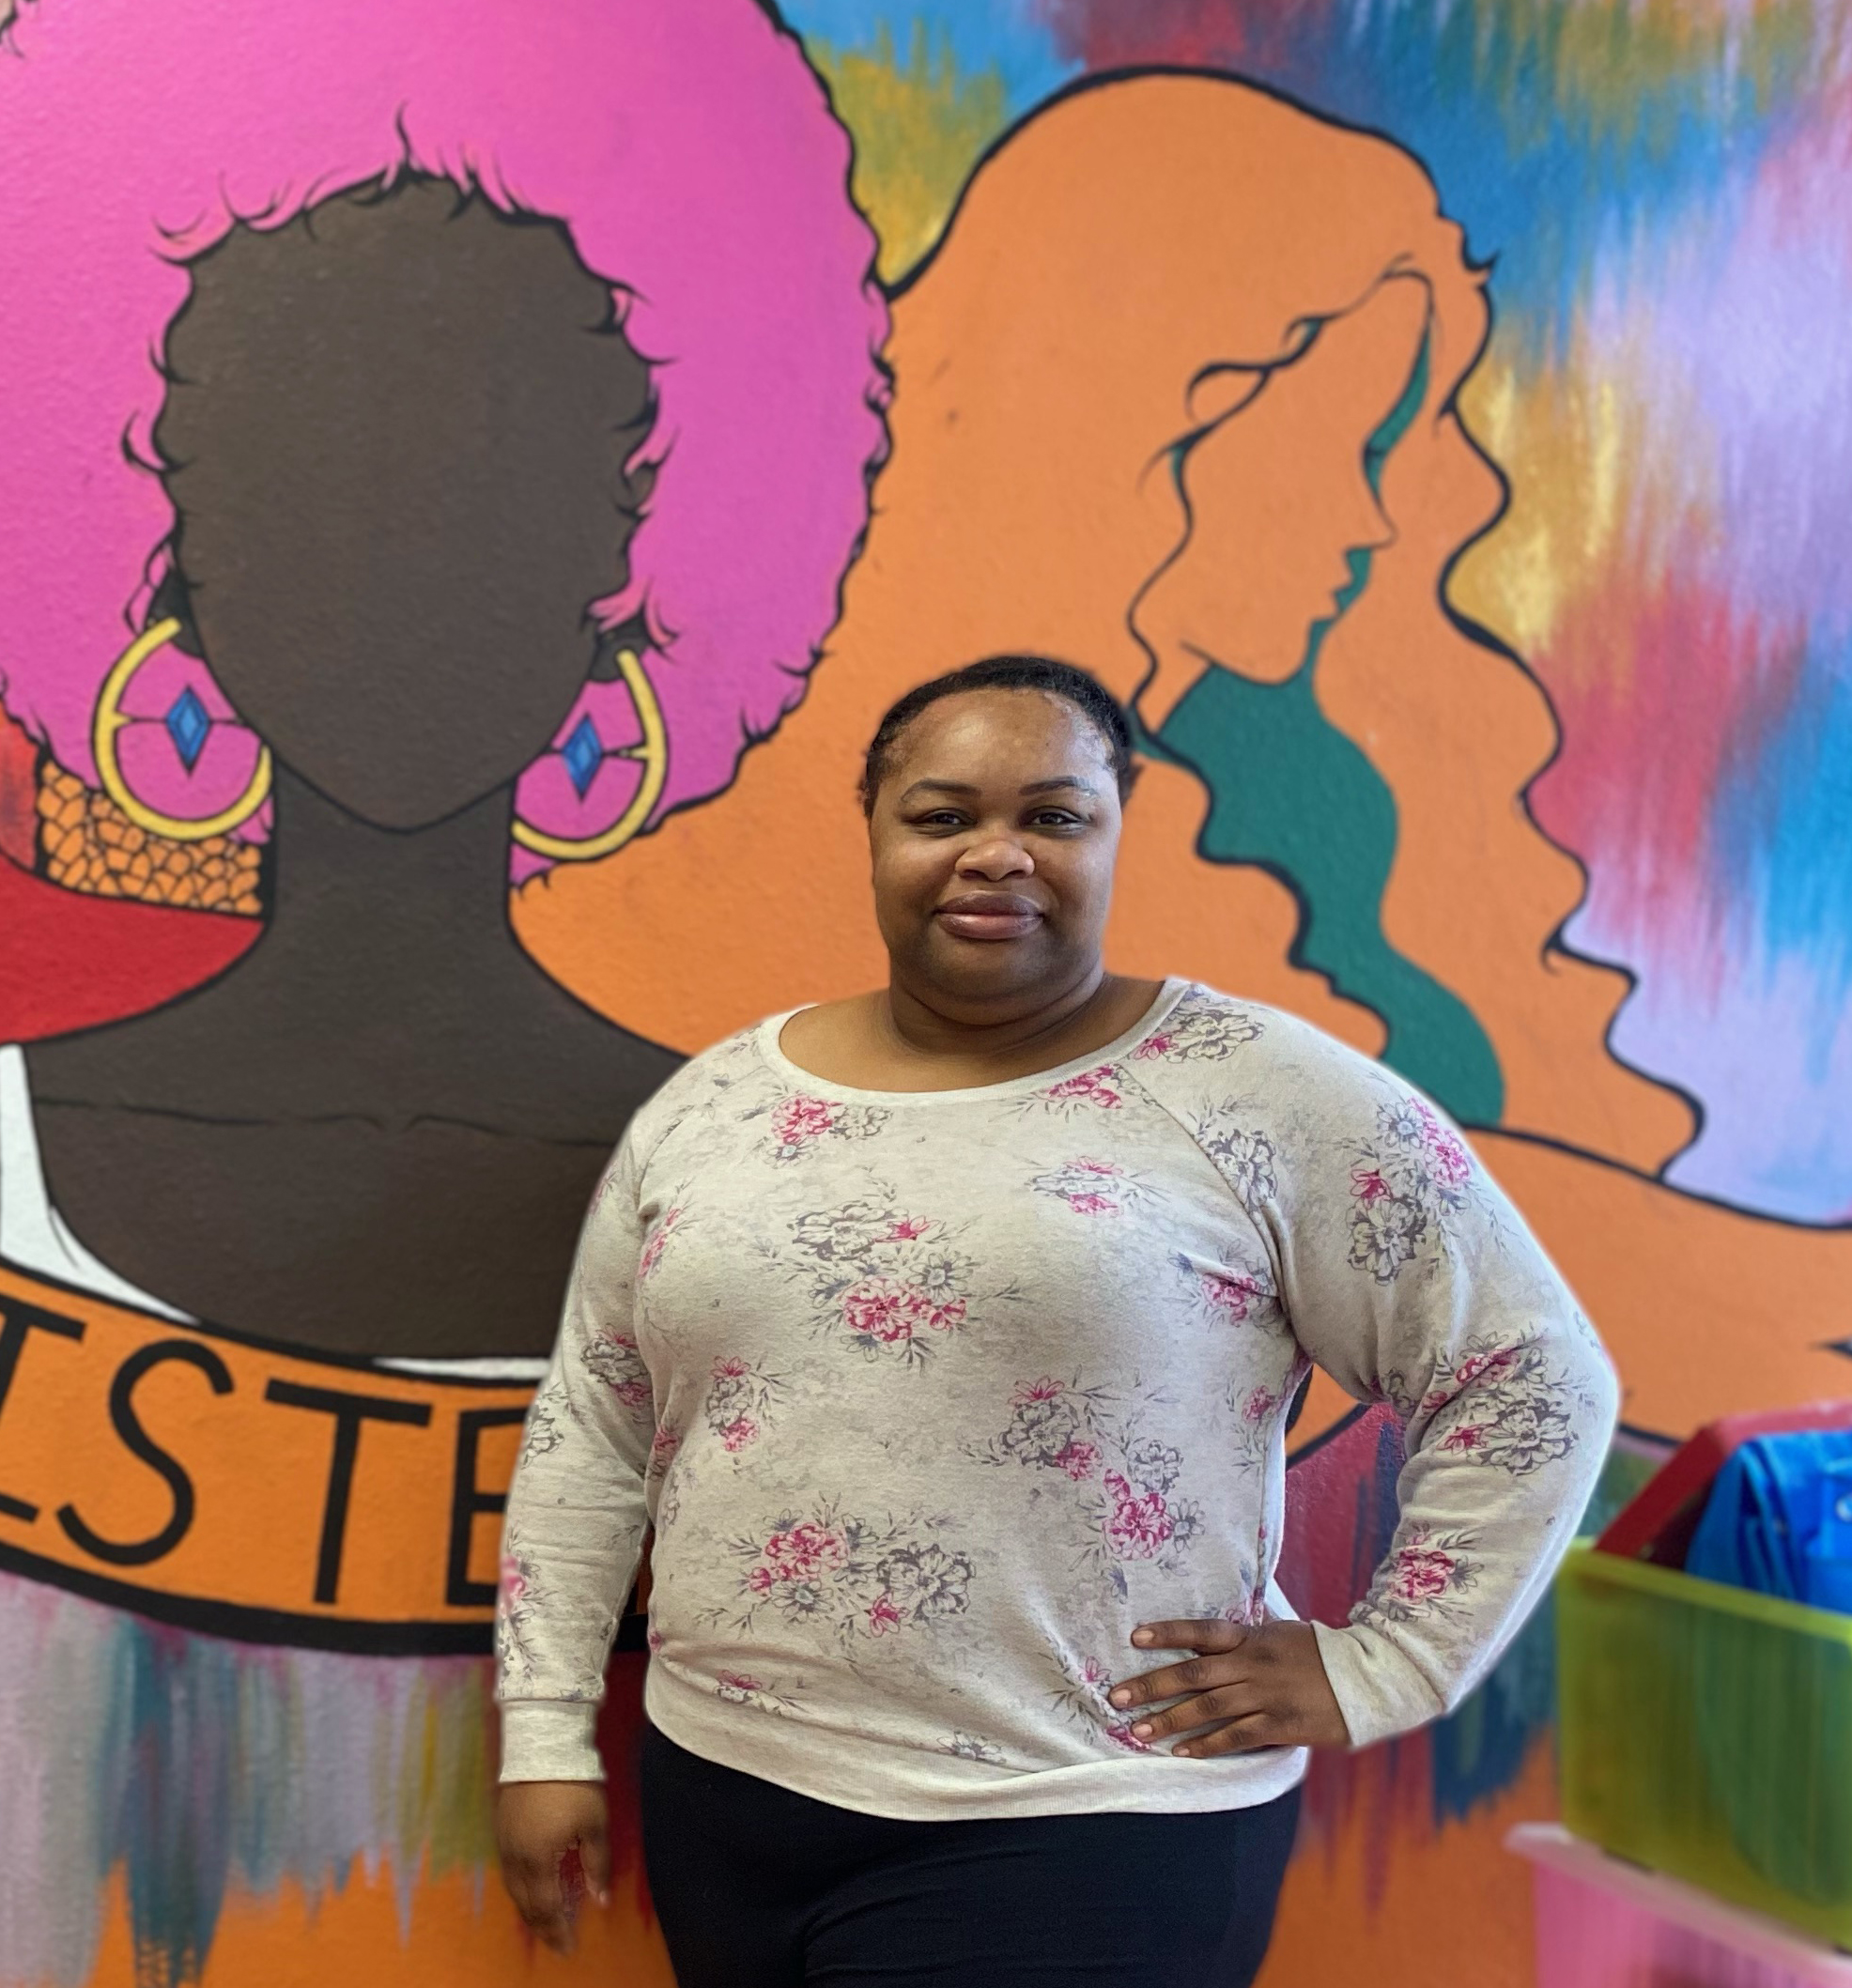 Jamila Coleman in front of colorful painting